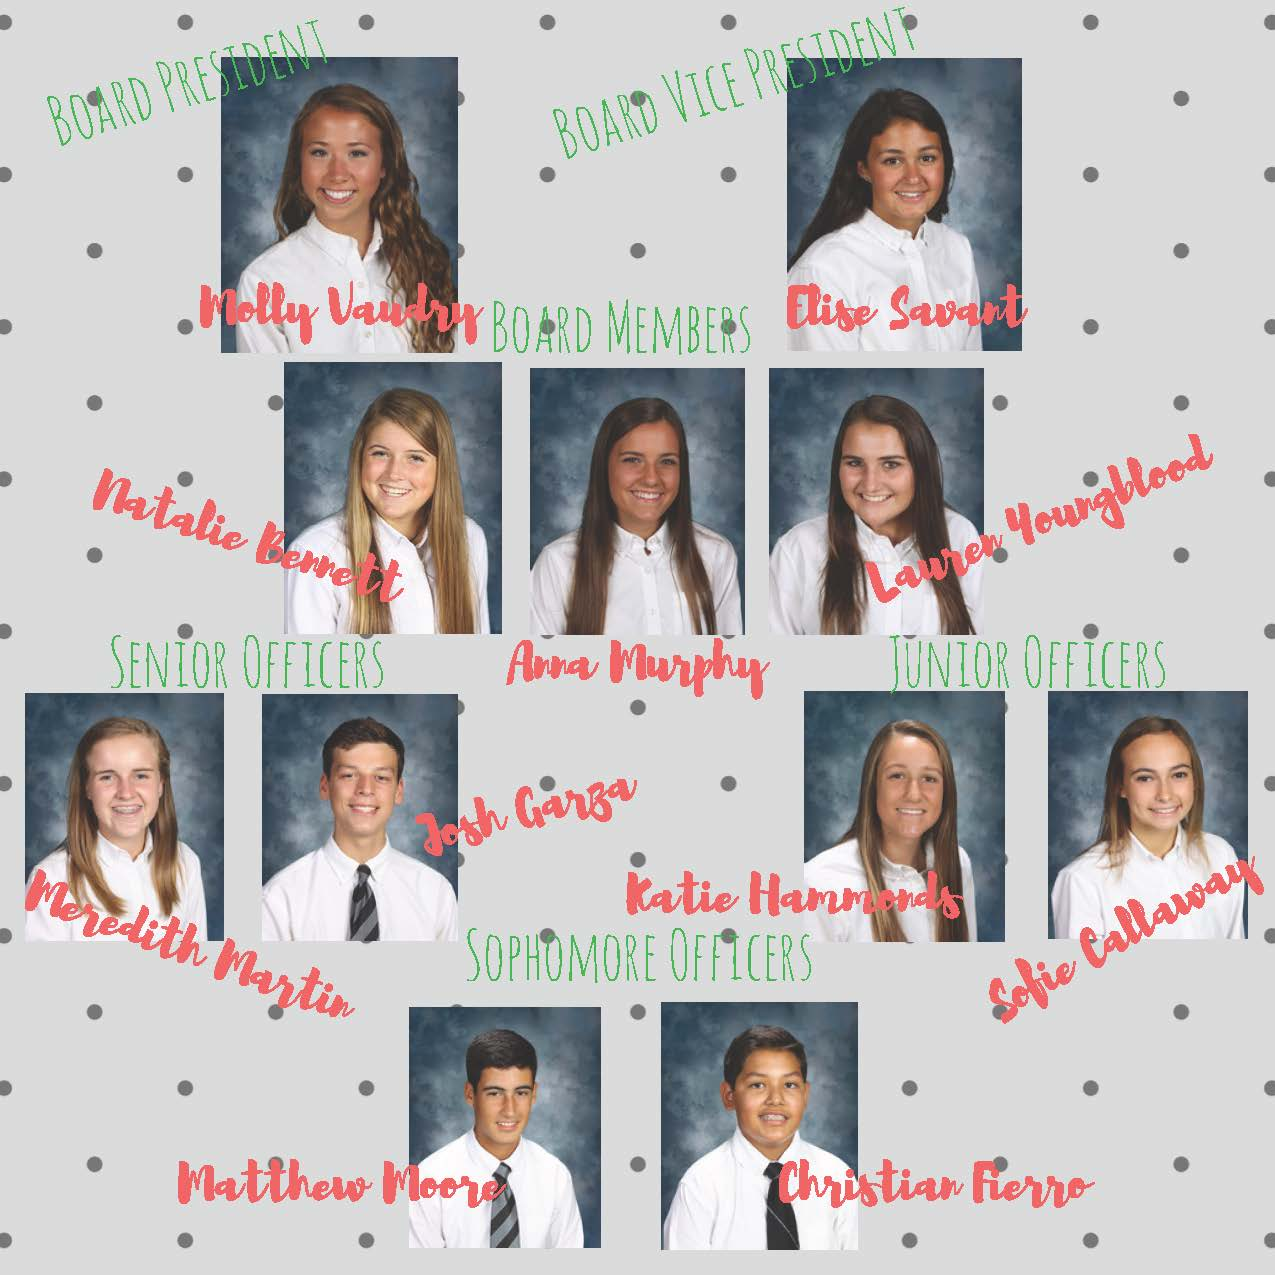 2017 - 2018 Board and Officers